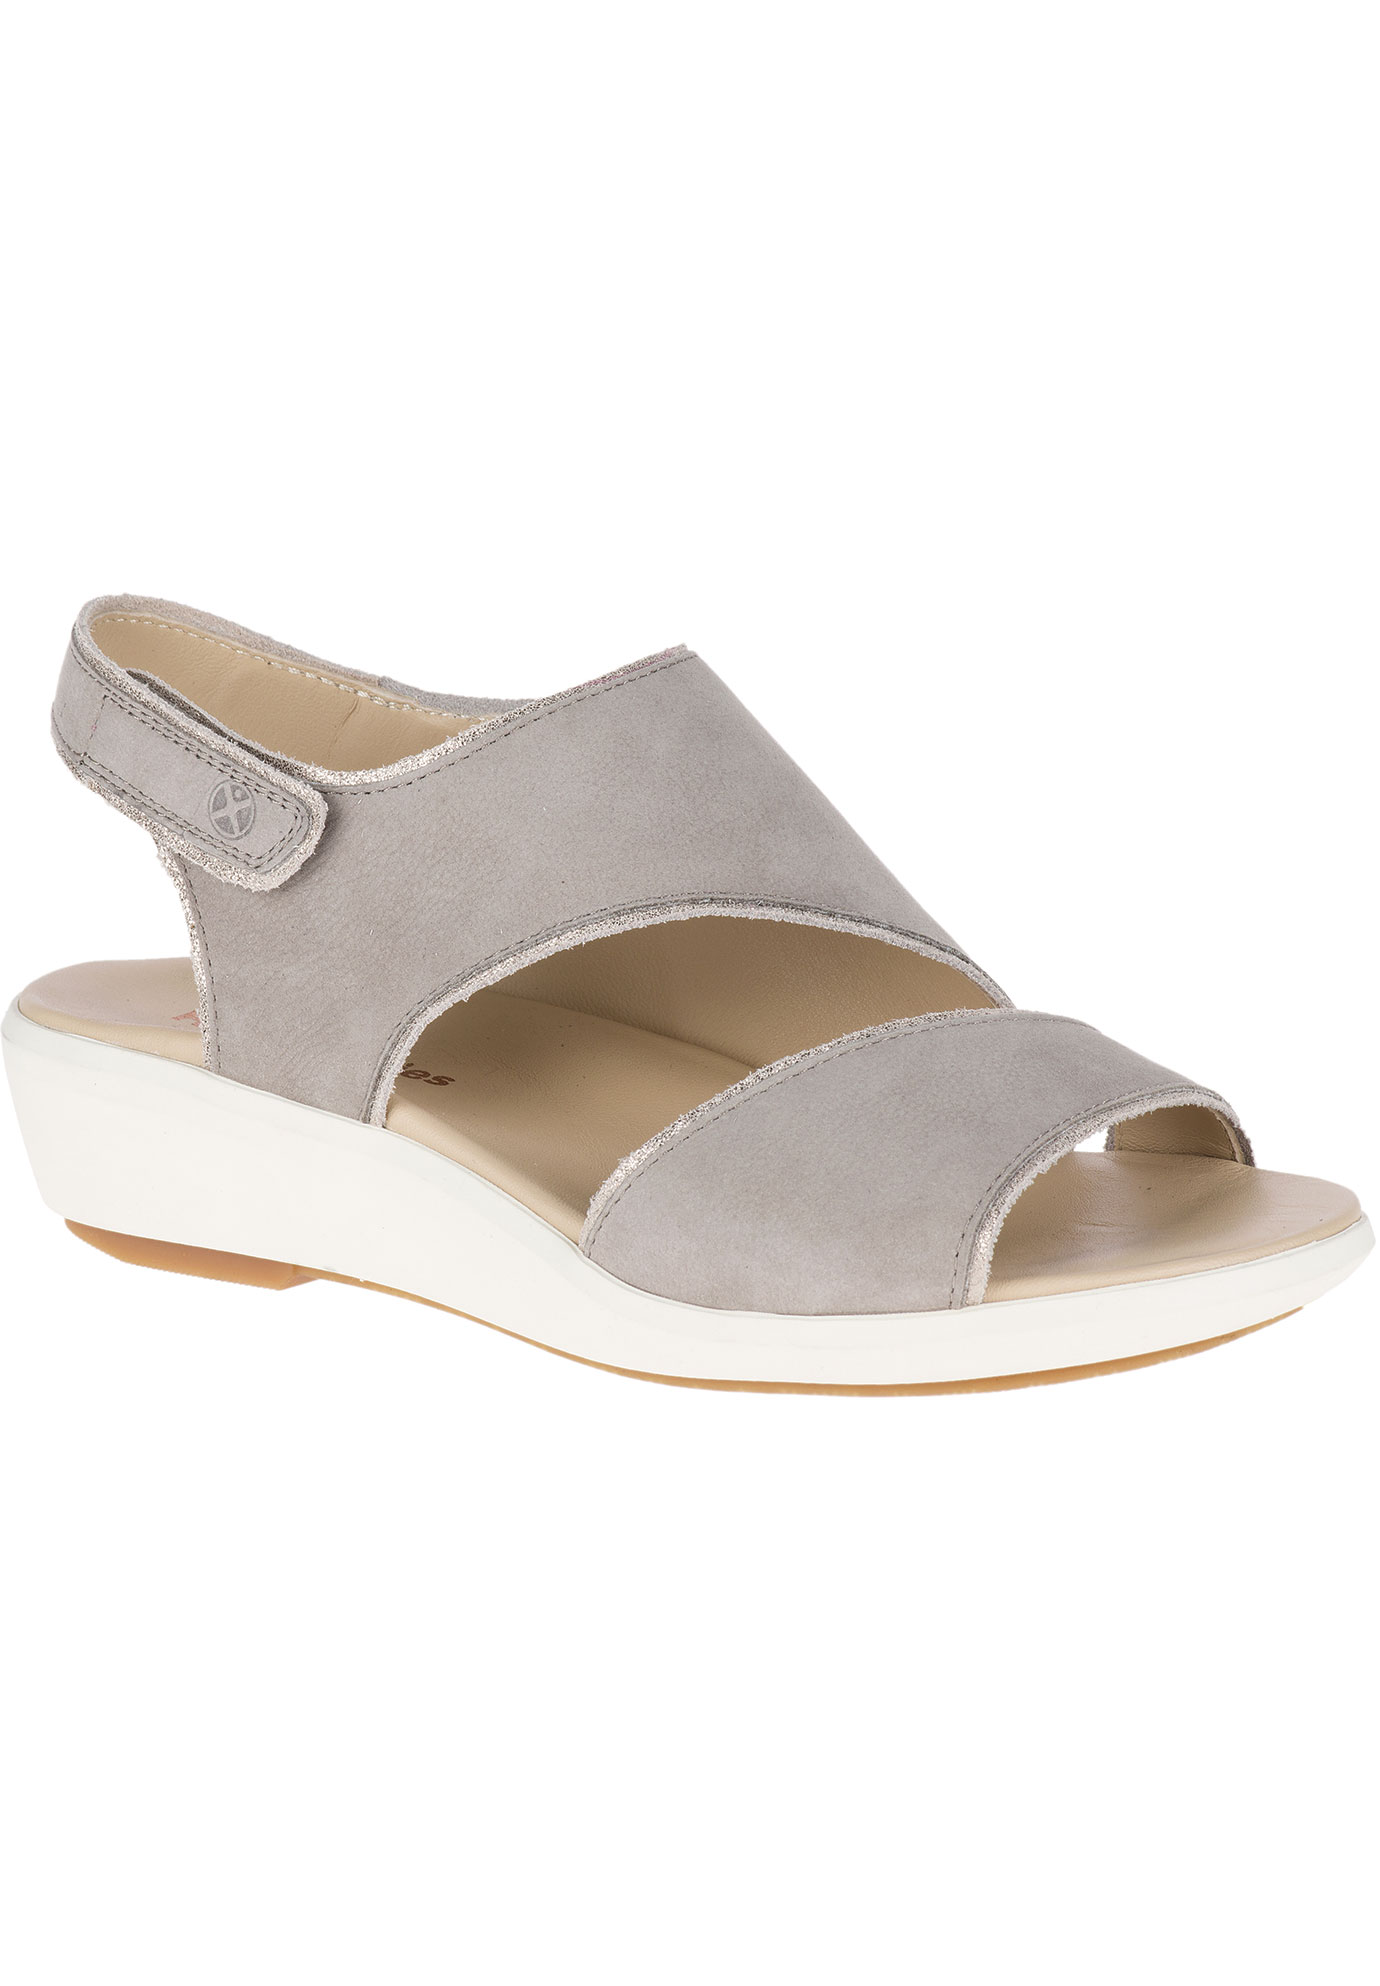 Lyricale Slingback Sandals by Hush Puppies®, ICE GREY NUBUCK, hi-res